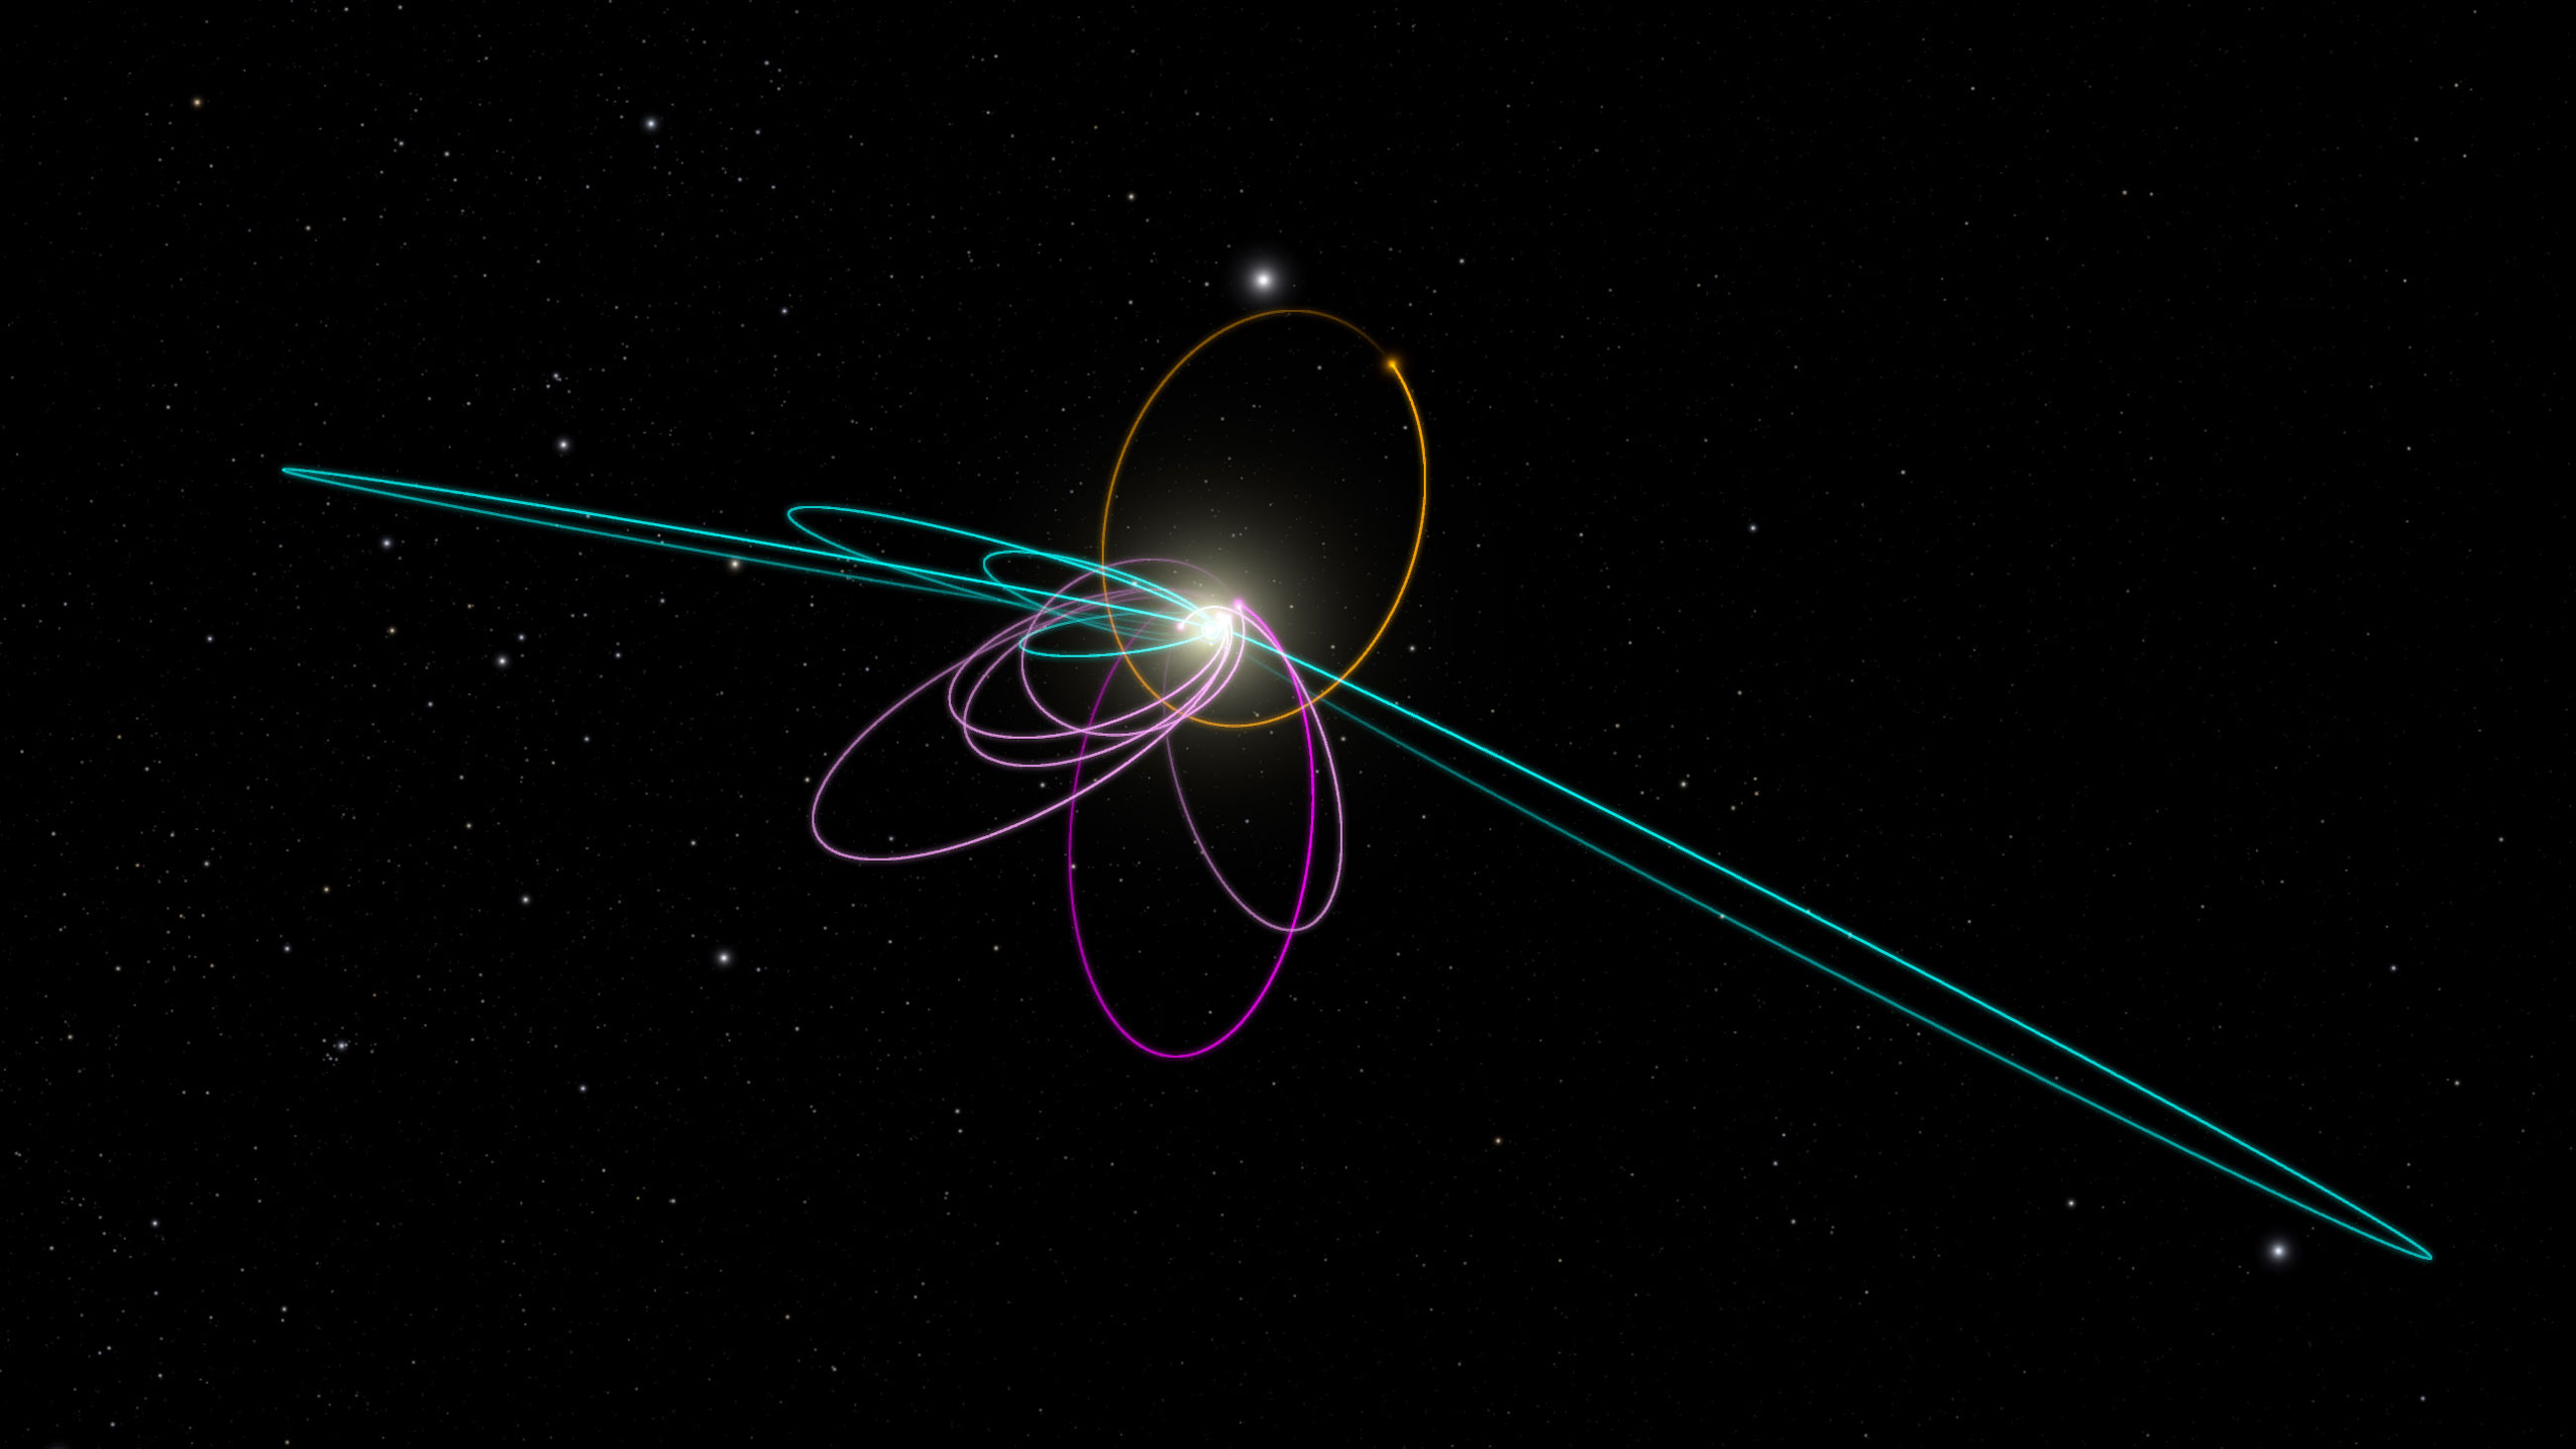 Kuiper belt objects with clustered orbits that are in the plane (pink) and perpendicular to the plane (aqua) of the hypothetical Planet Nine (orange).